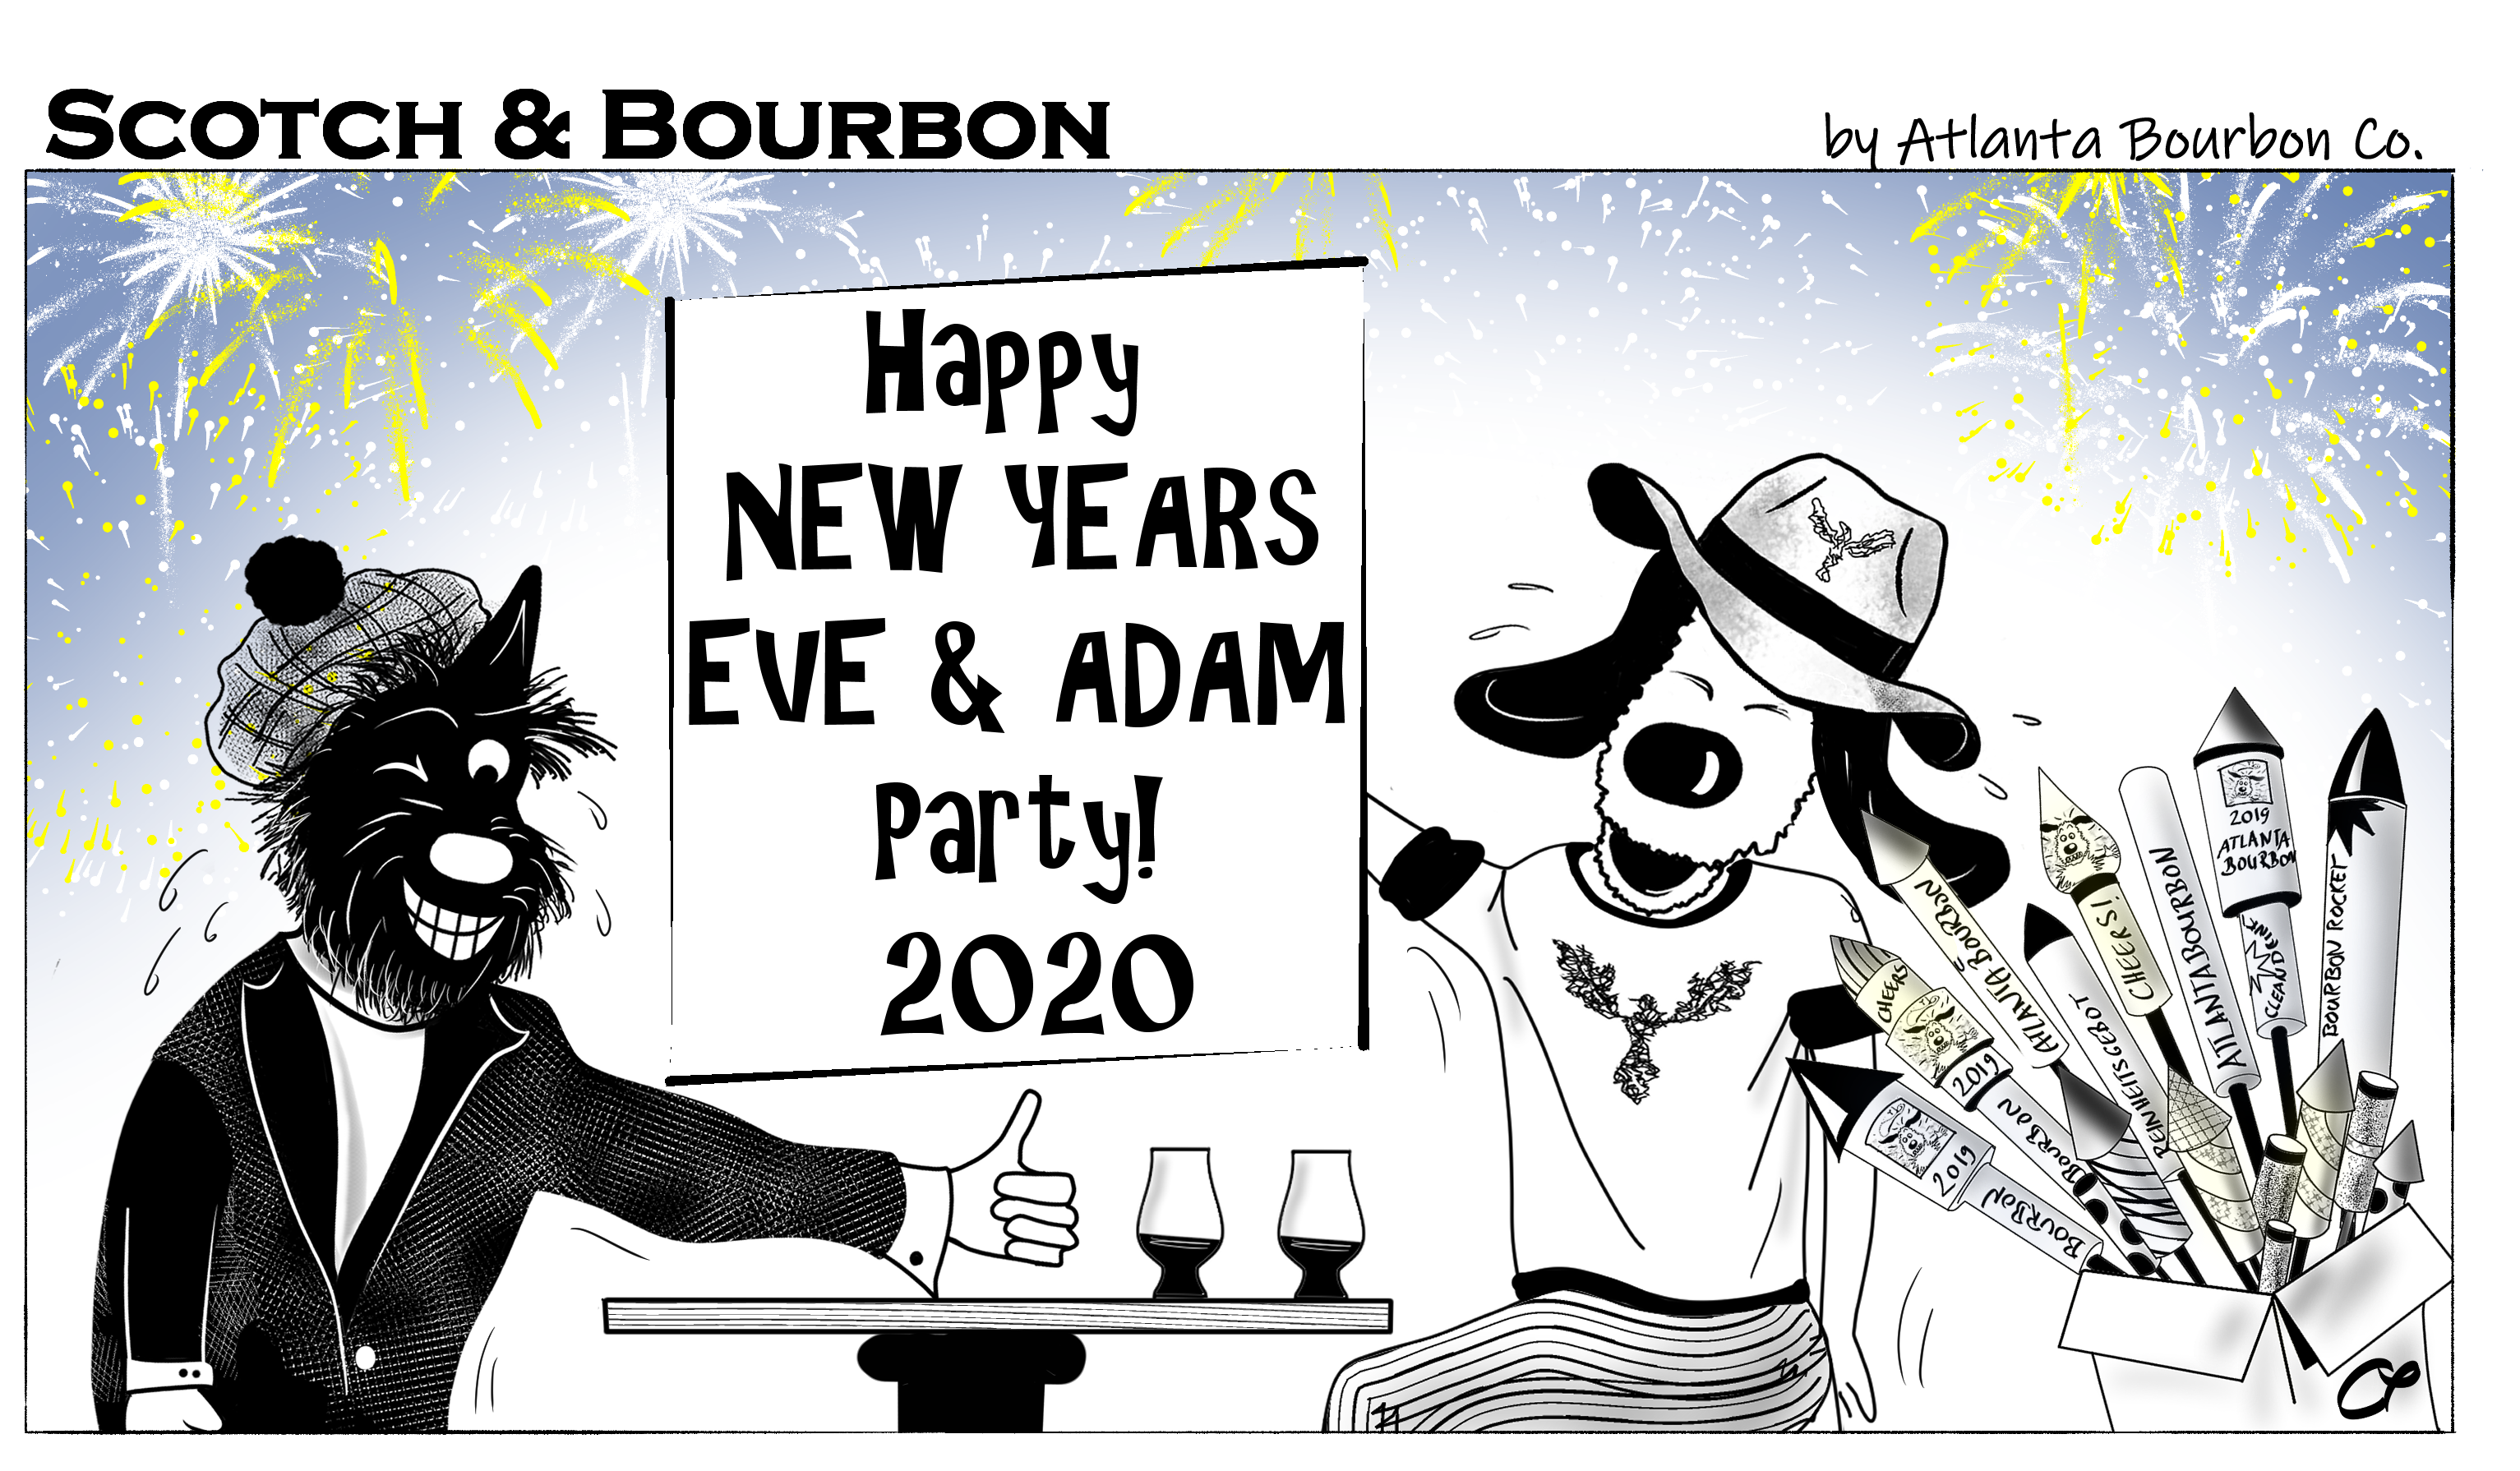 ScotchAndBourbon_Scotchnog_Xmas_2019_AtlantaBourbonCompany_Cartoon